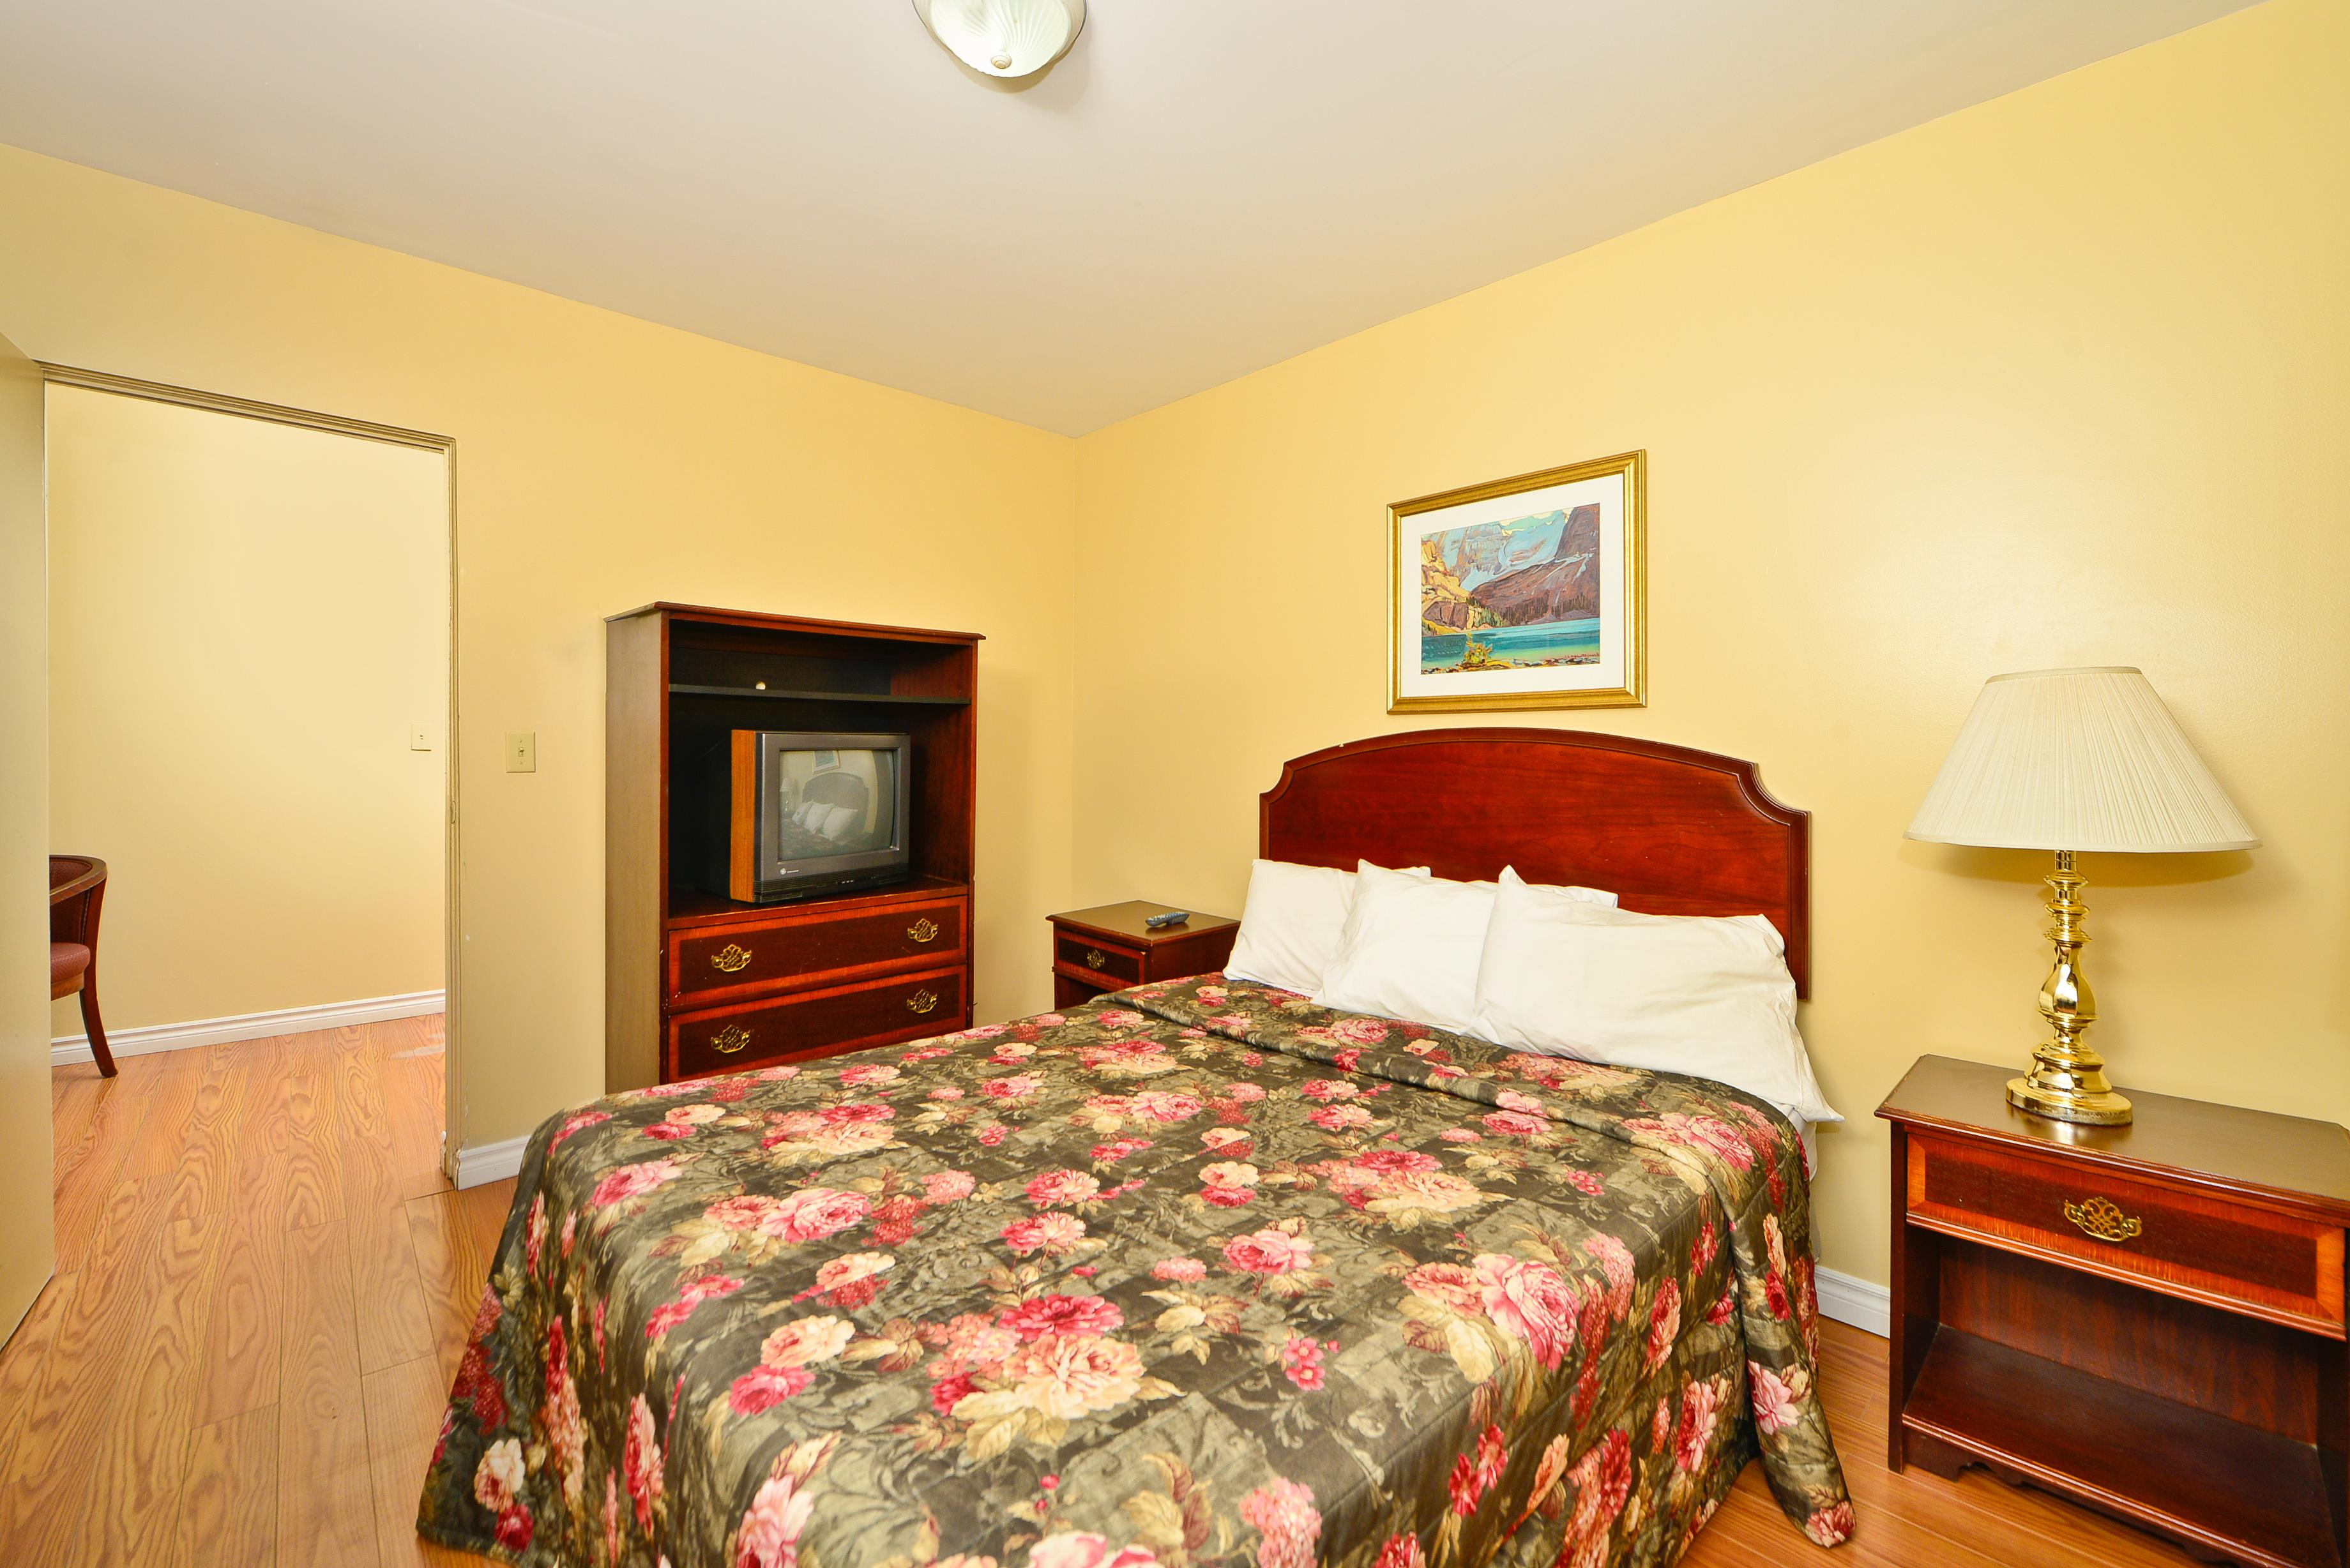 parry sound single parents - private room for $52 palestine meets parry sound at za'atar yellow single, close to downtown, fitness trail, georgian bay, beaches, and the stockey performing arts cen.